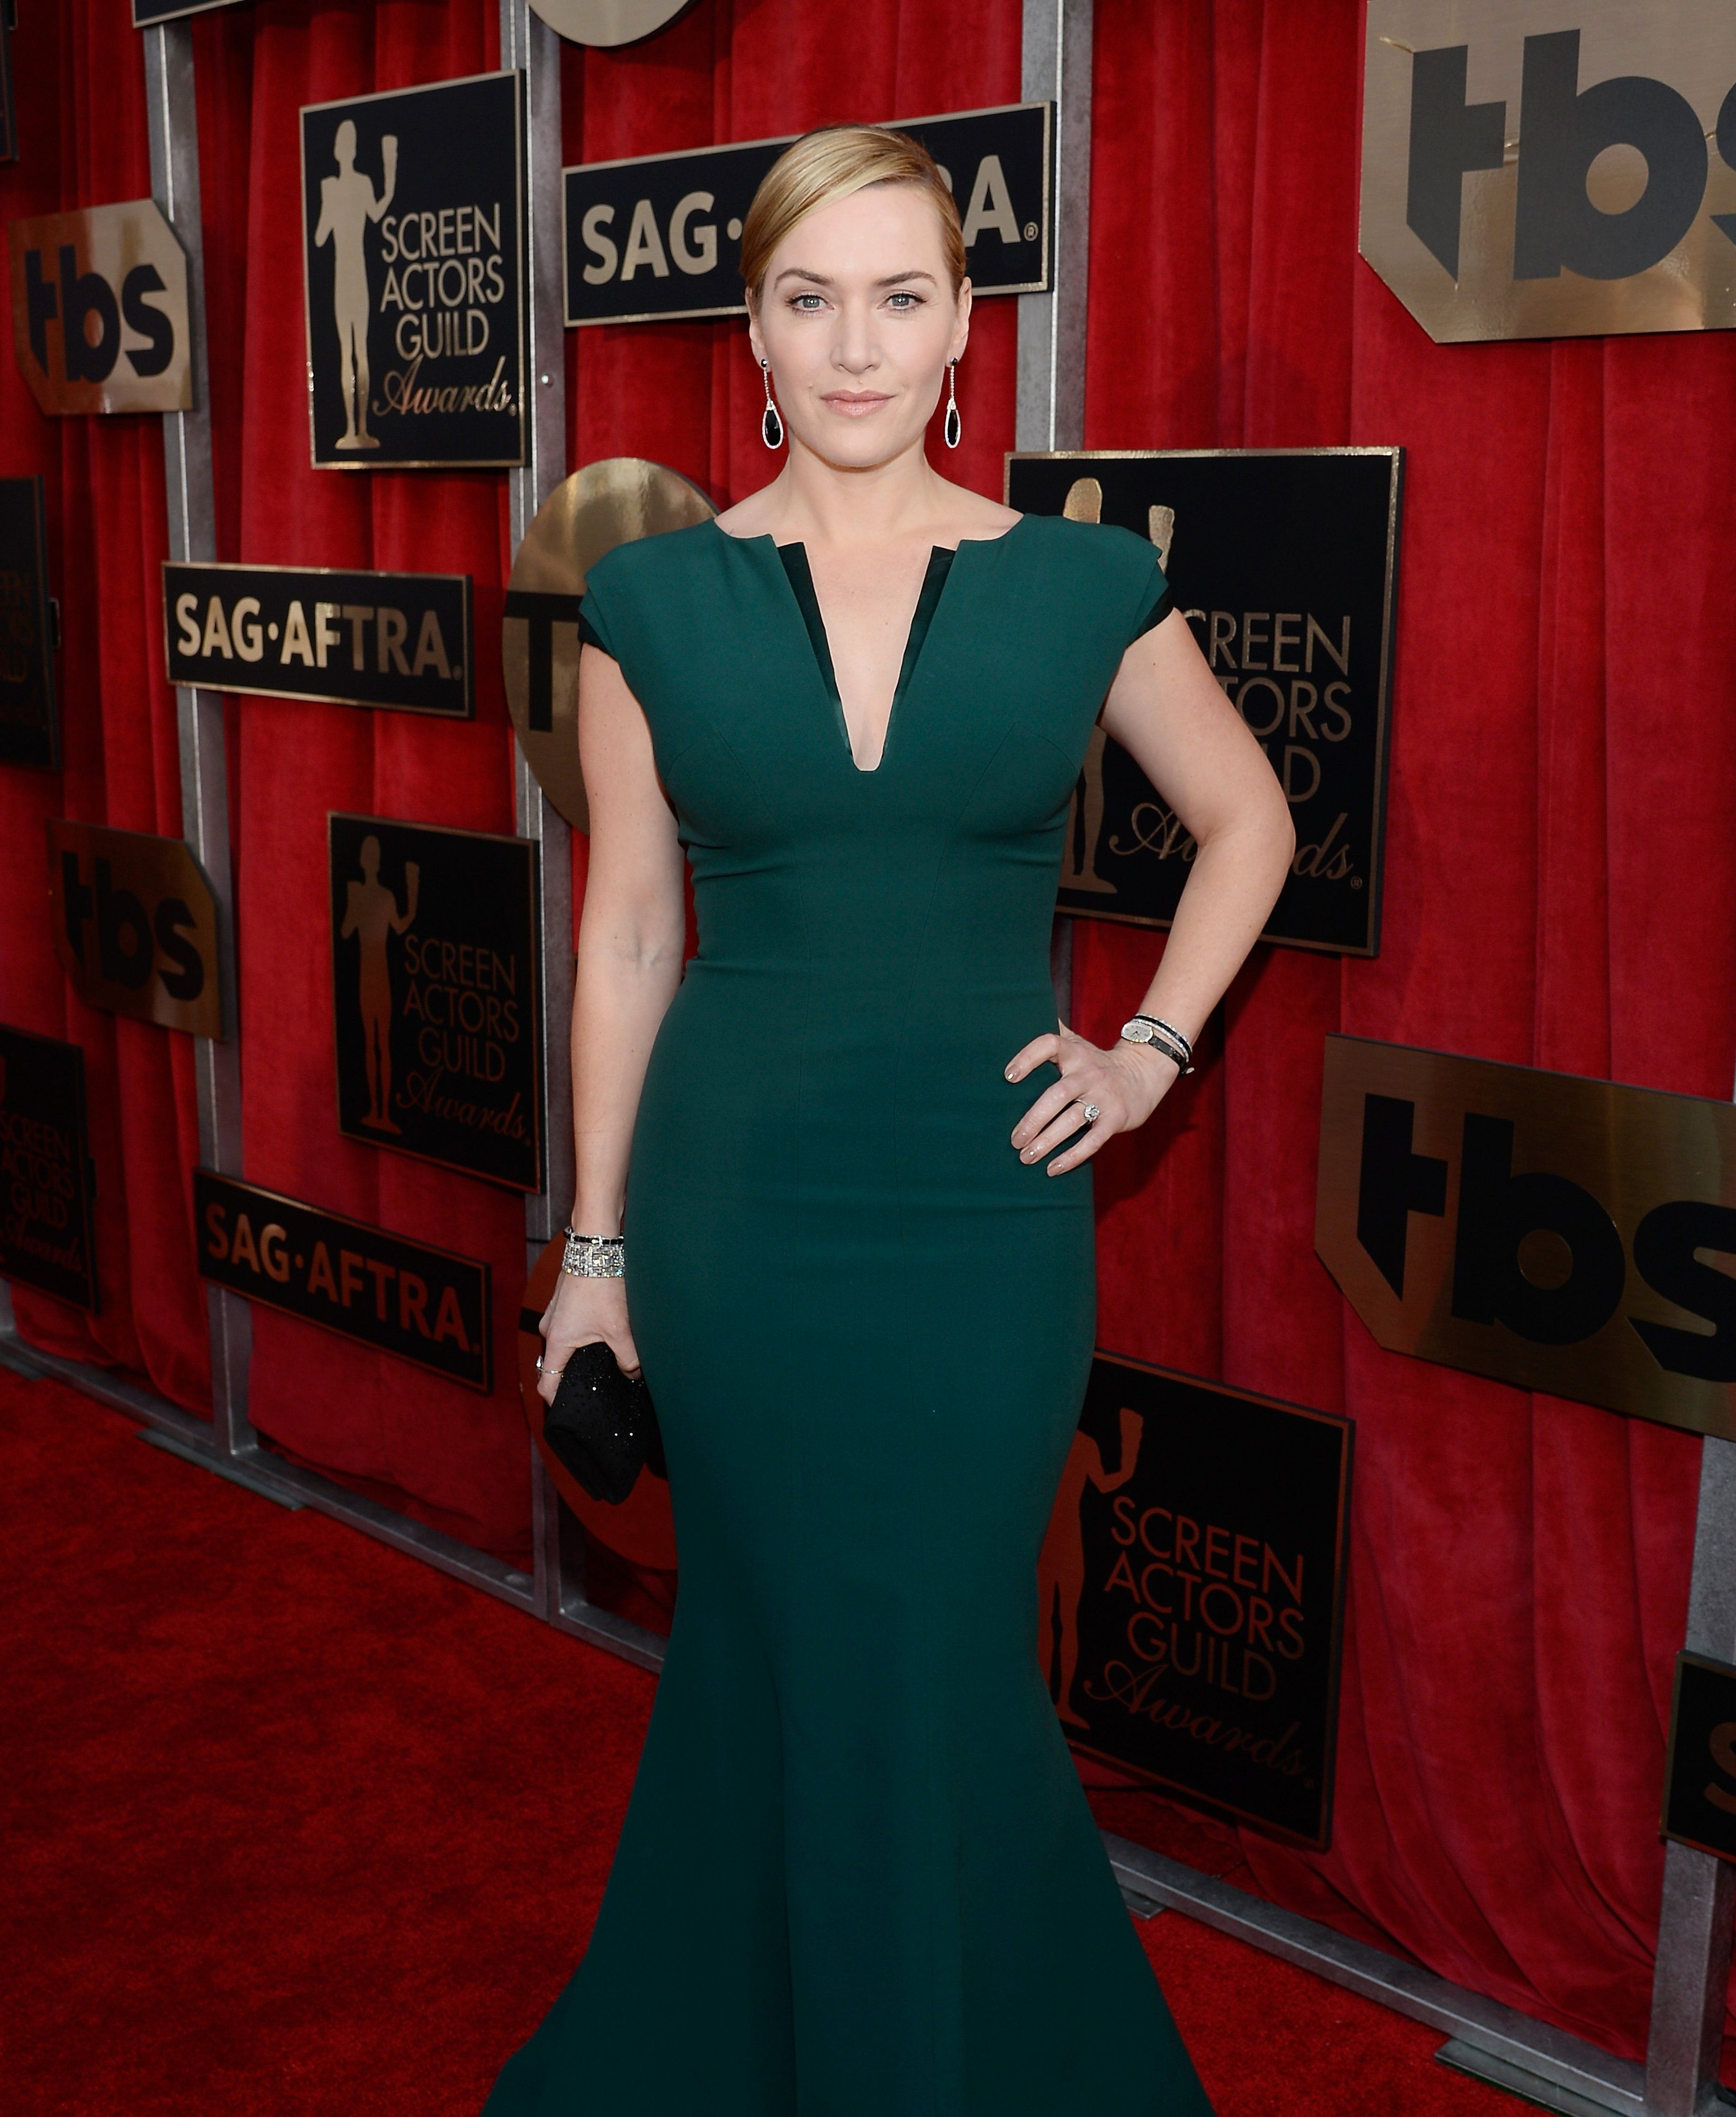 Kate Winslet in Giorgio Armani and Neil Lane and Alexandra Mor jewelry